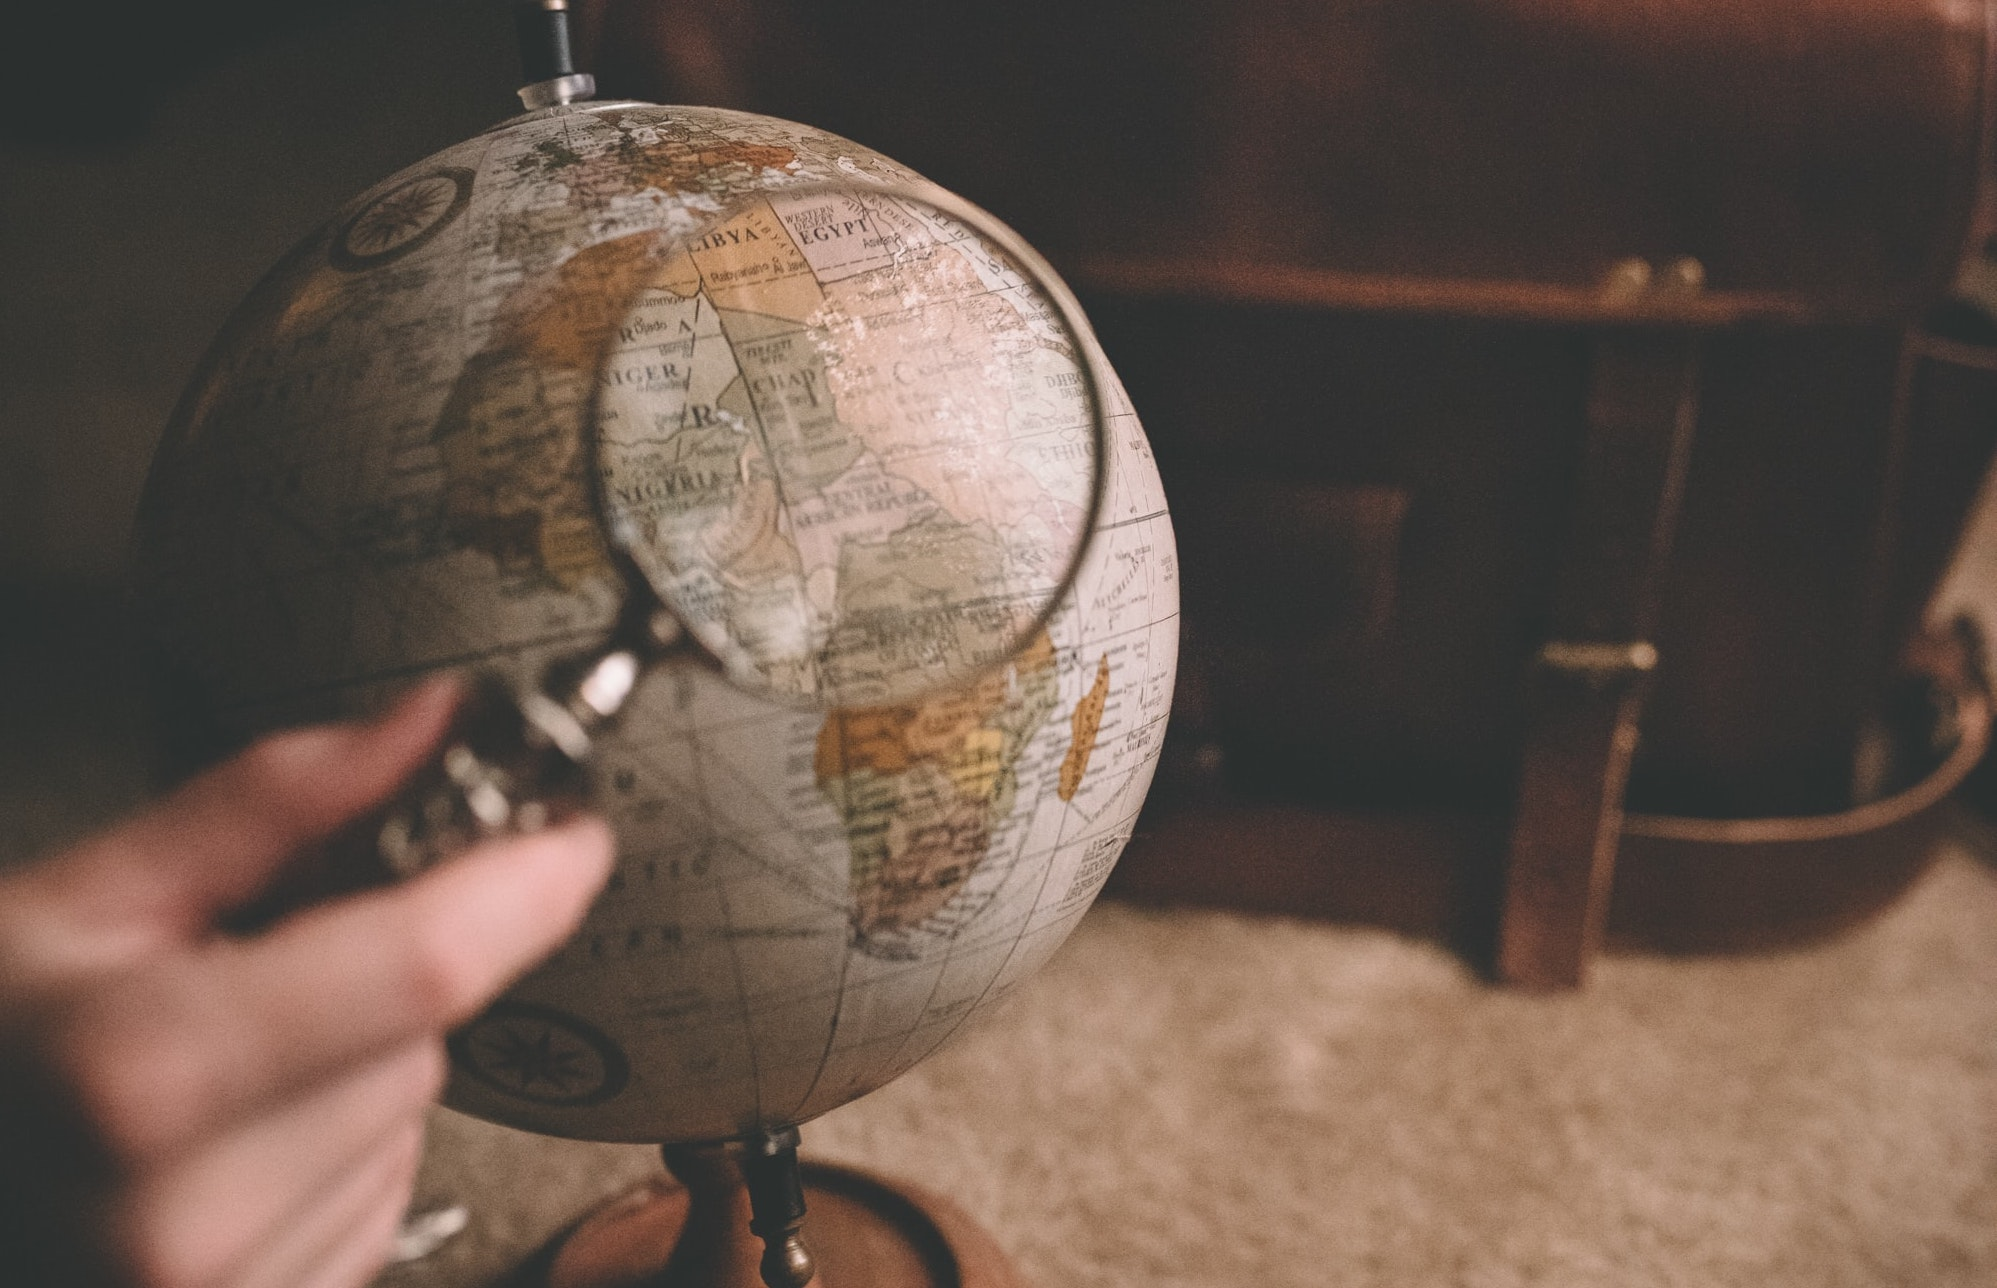 Globe and magnifying glass. Photo by Clay Banks on Unsplash.